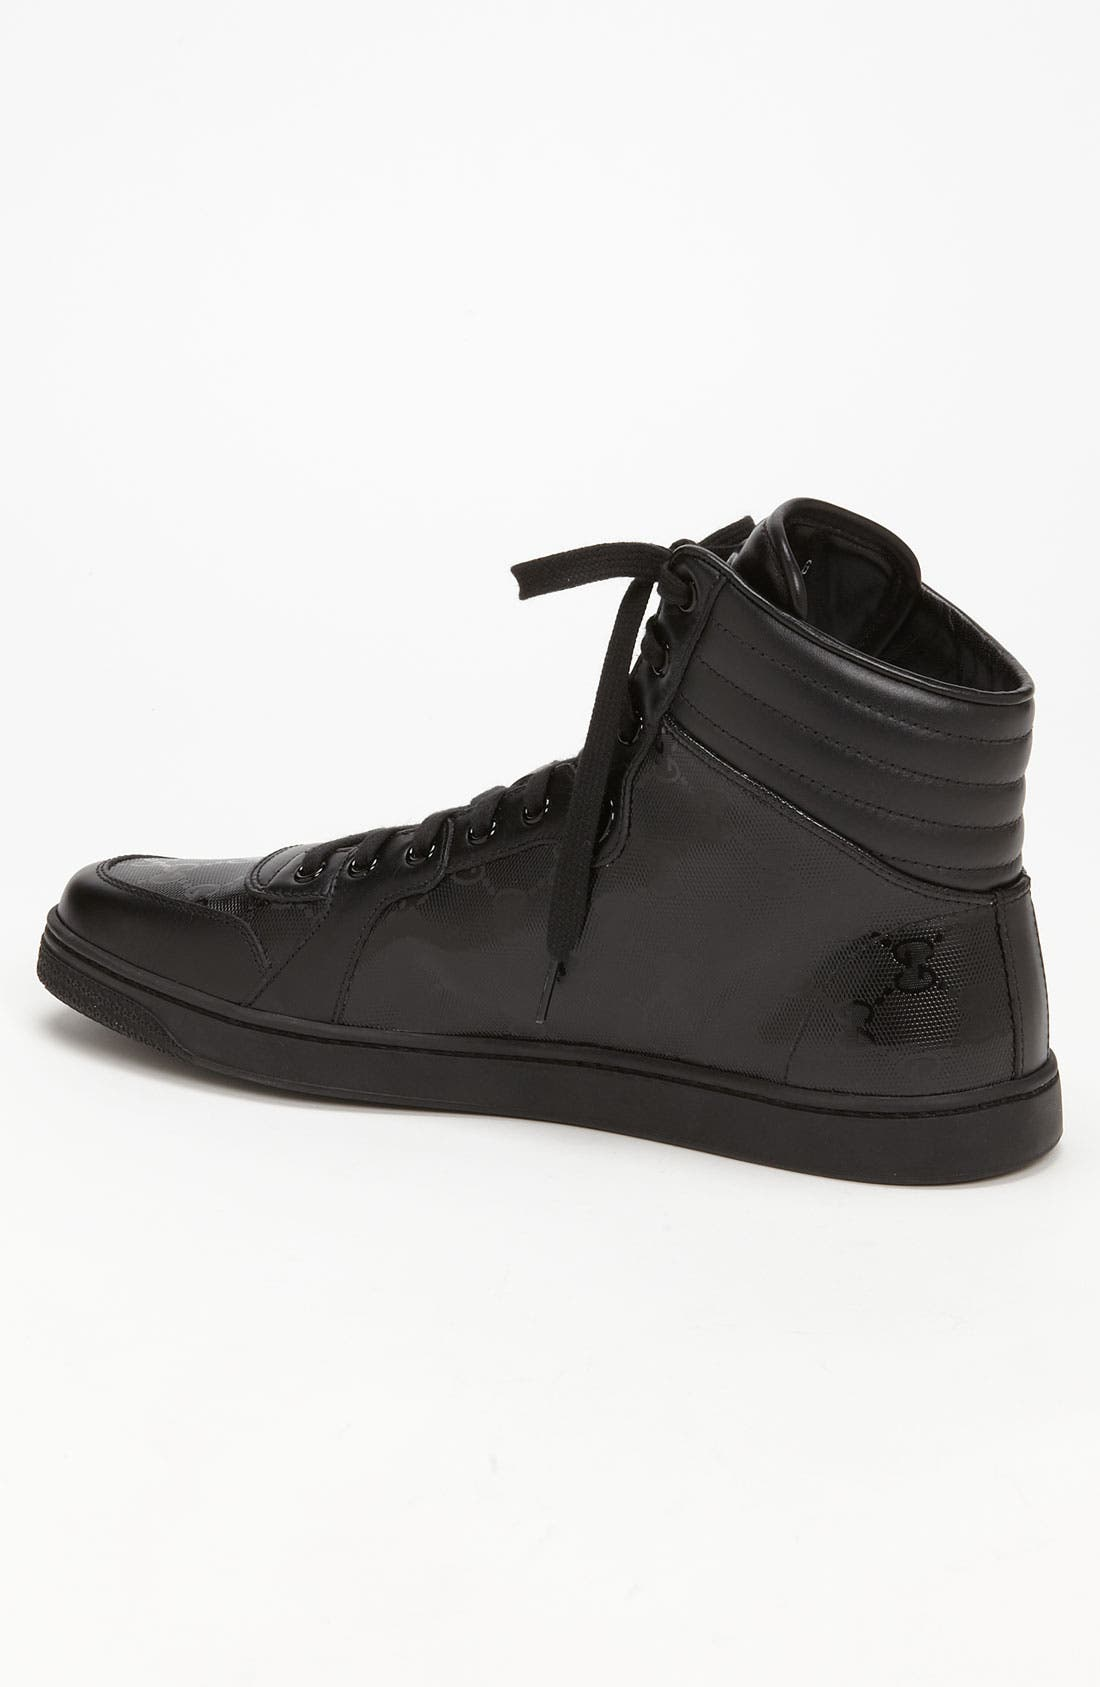 Alternate Image 2  - Gucci 'Coda' High Top Sneaker